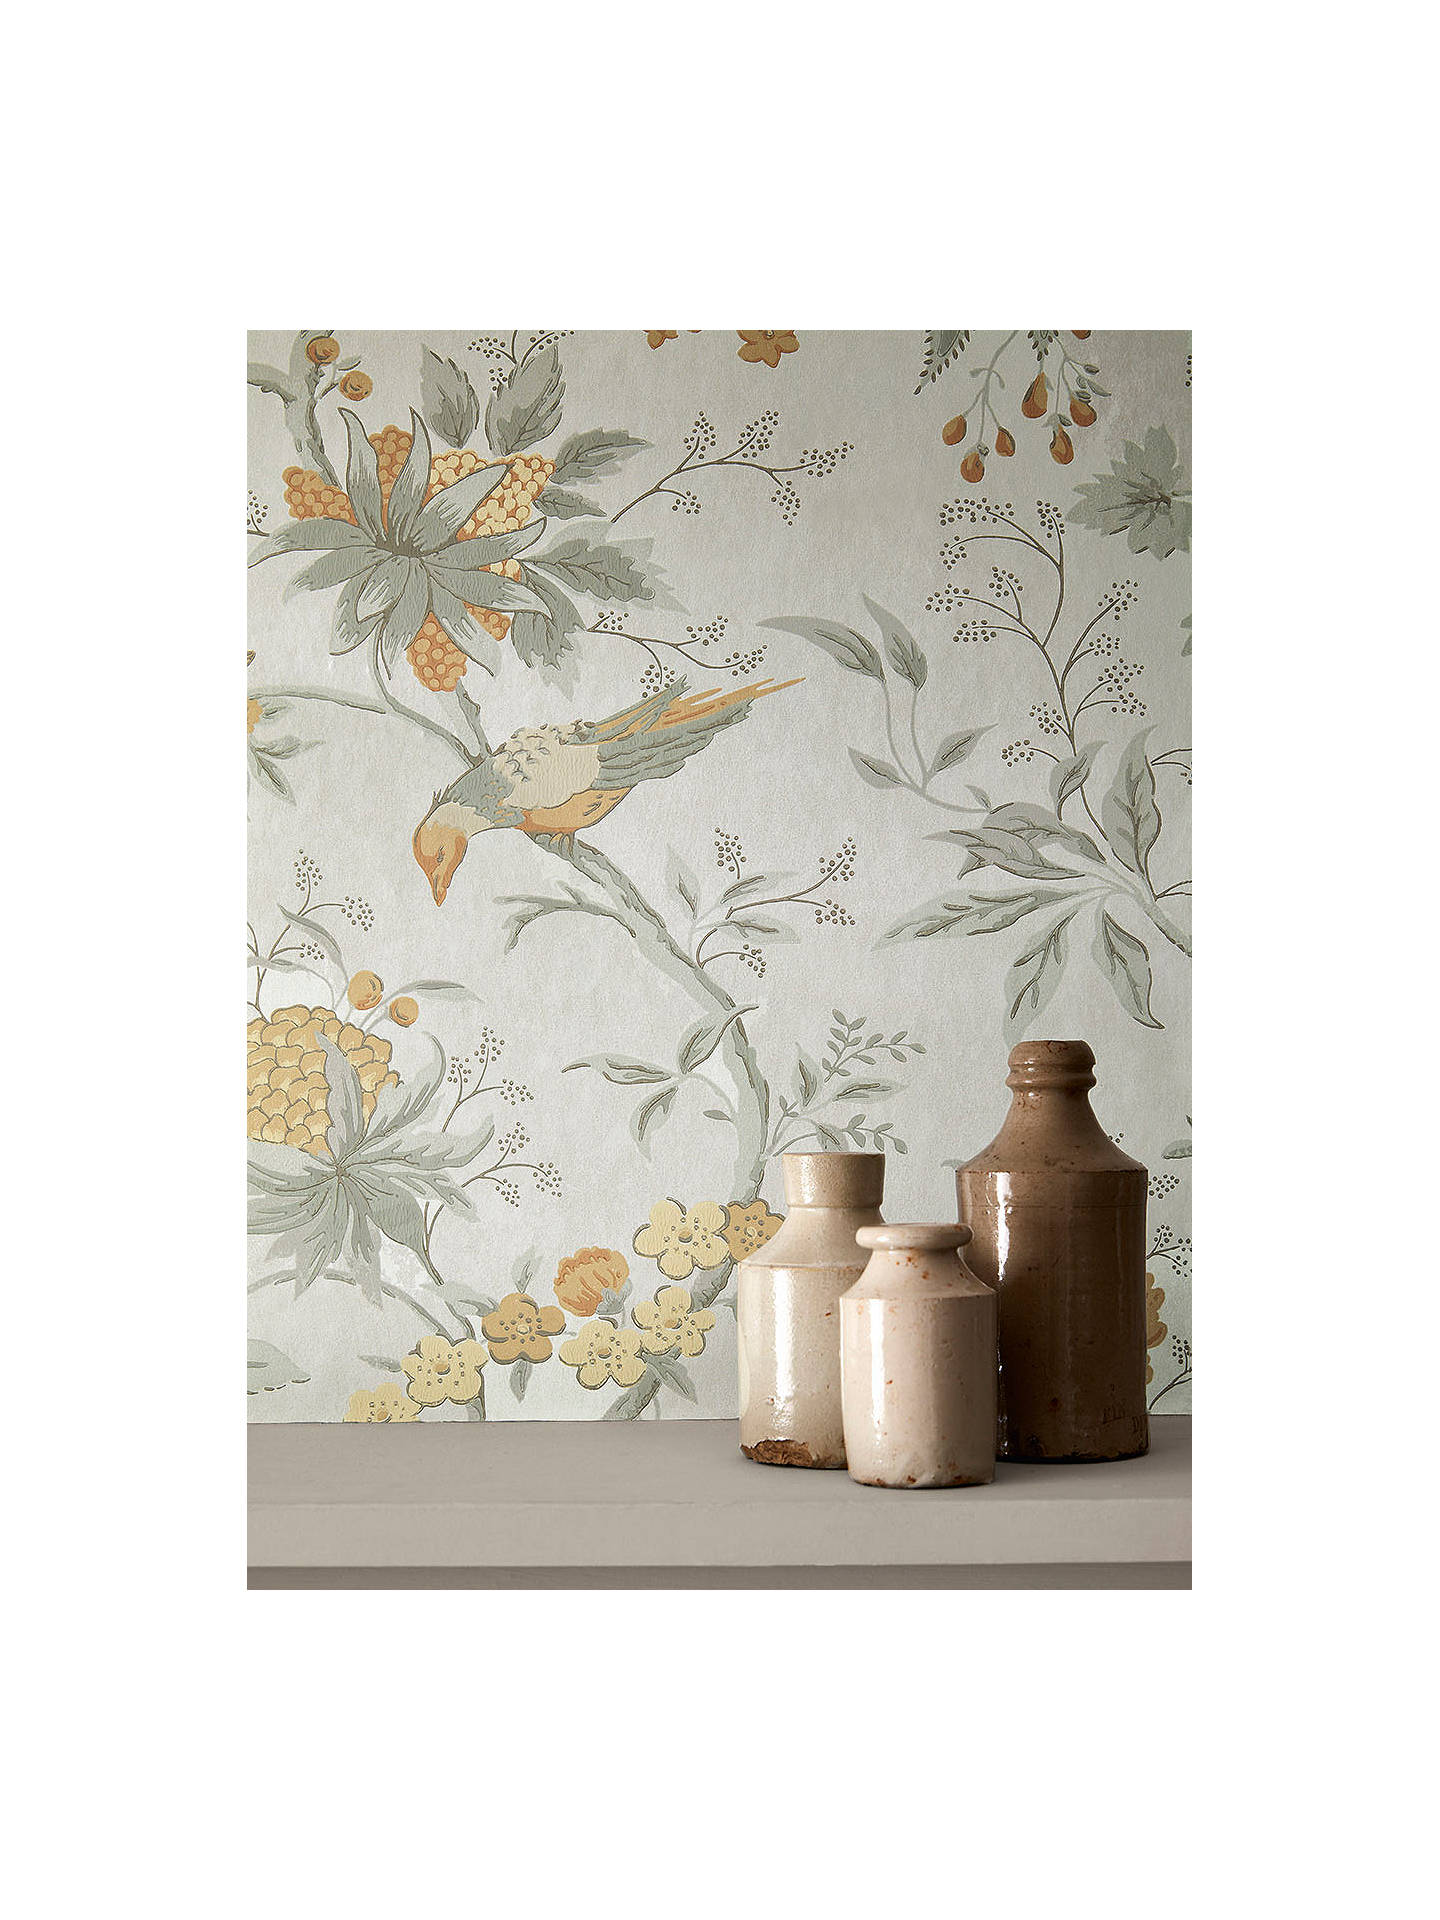 Buy The Little Greene Paint Company Brooke House Wallpaper, Cinder Online at johnlewis.com